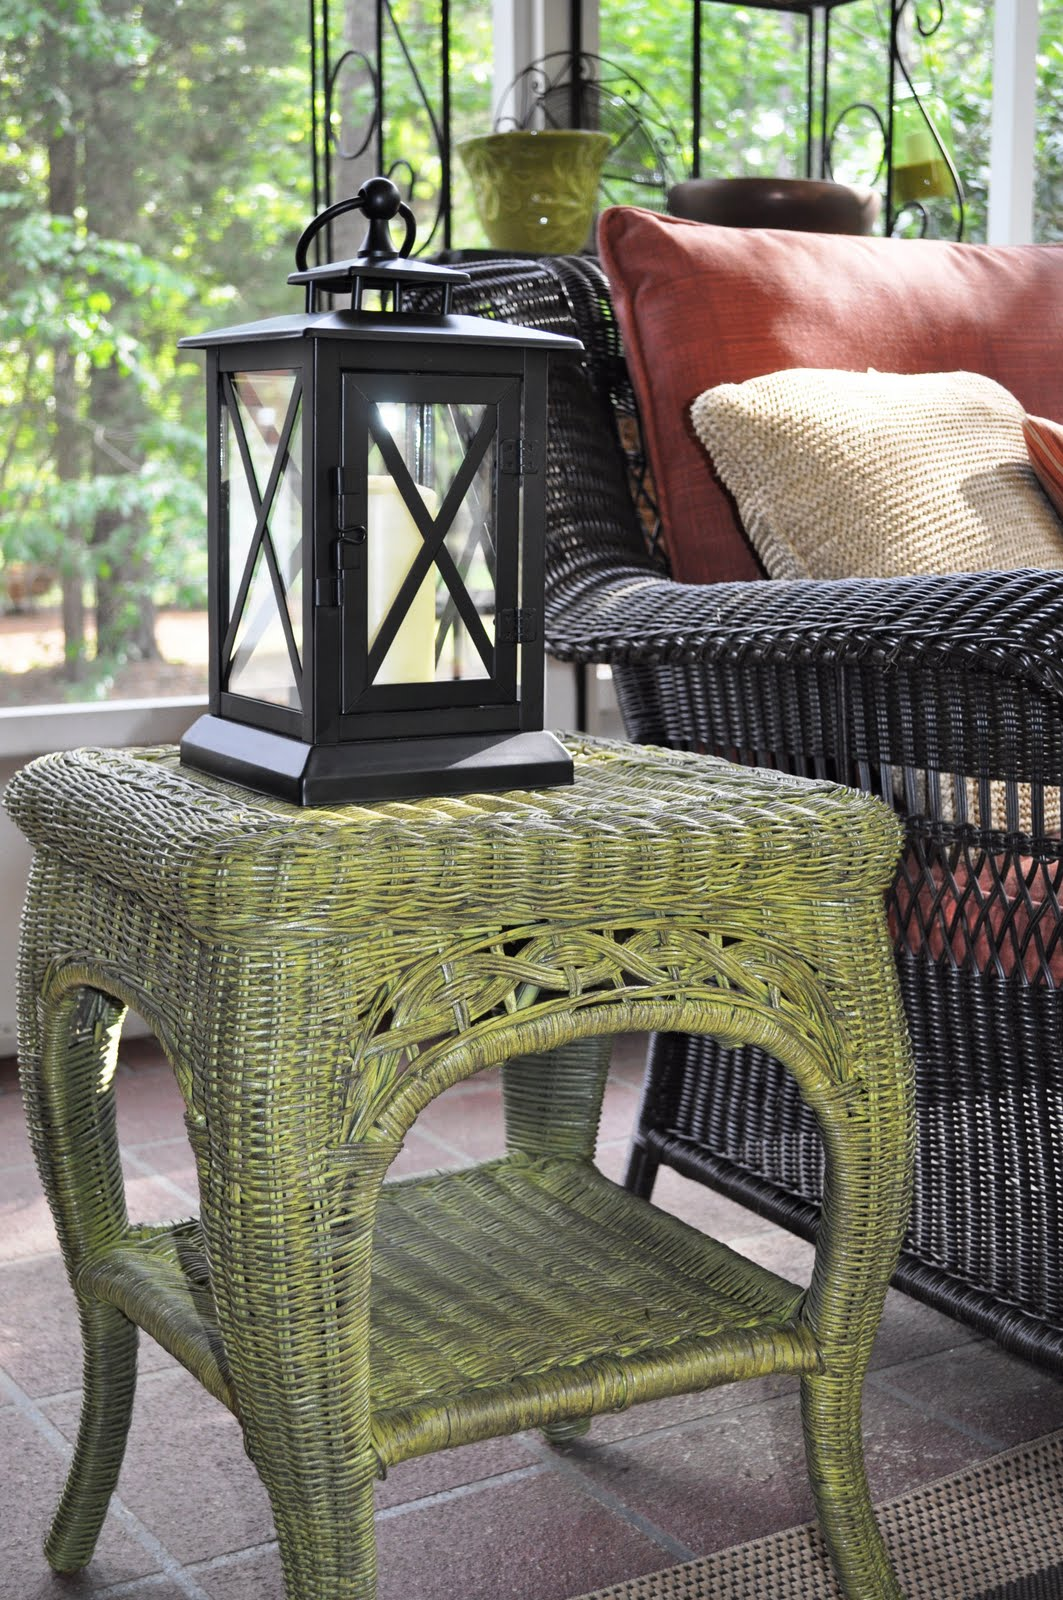 Remodelaholic fabulous finish wicker table revamped - Wicker furniture paint colors ...